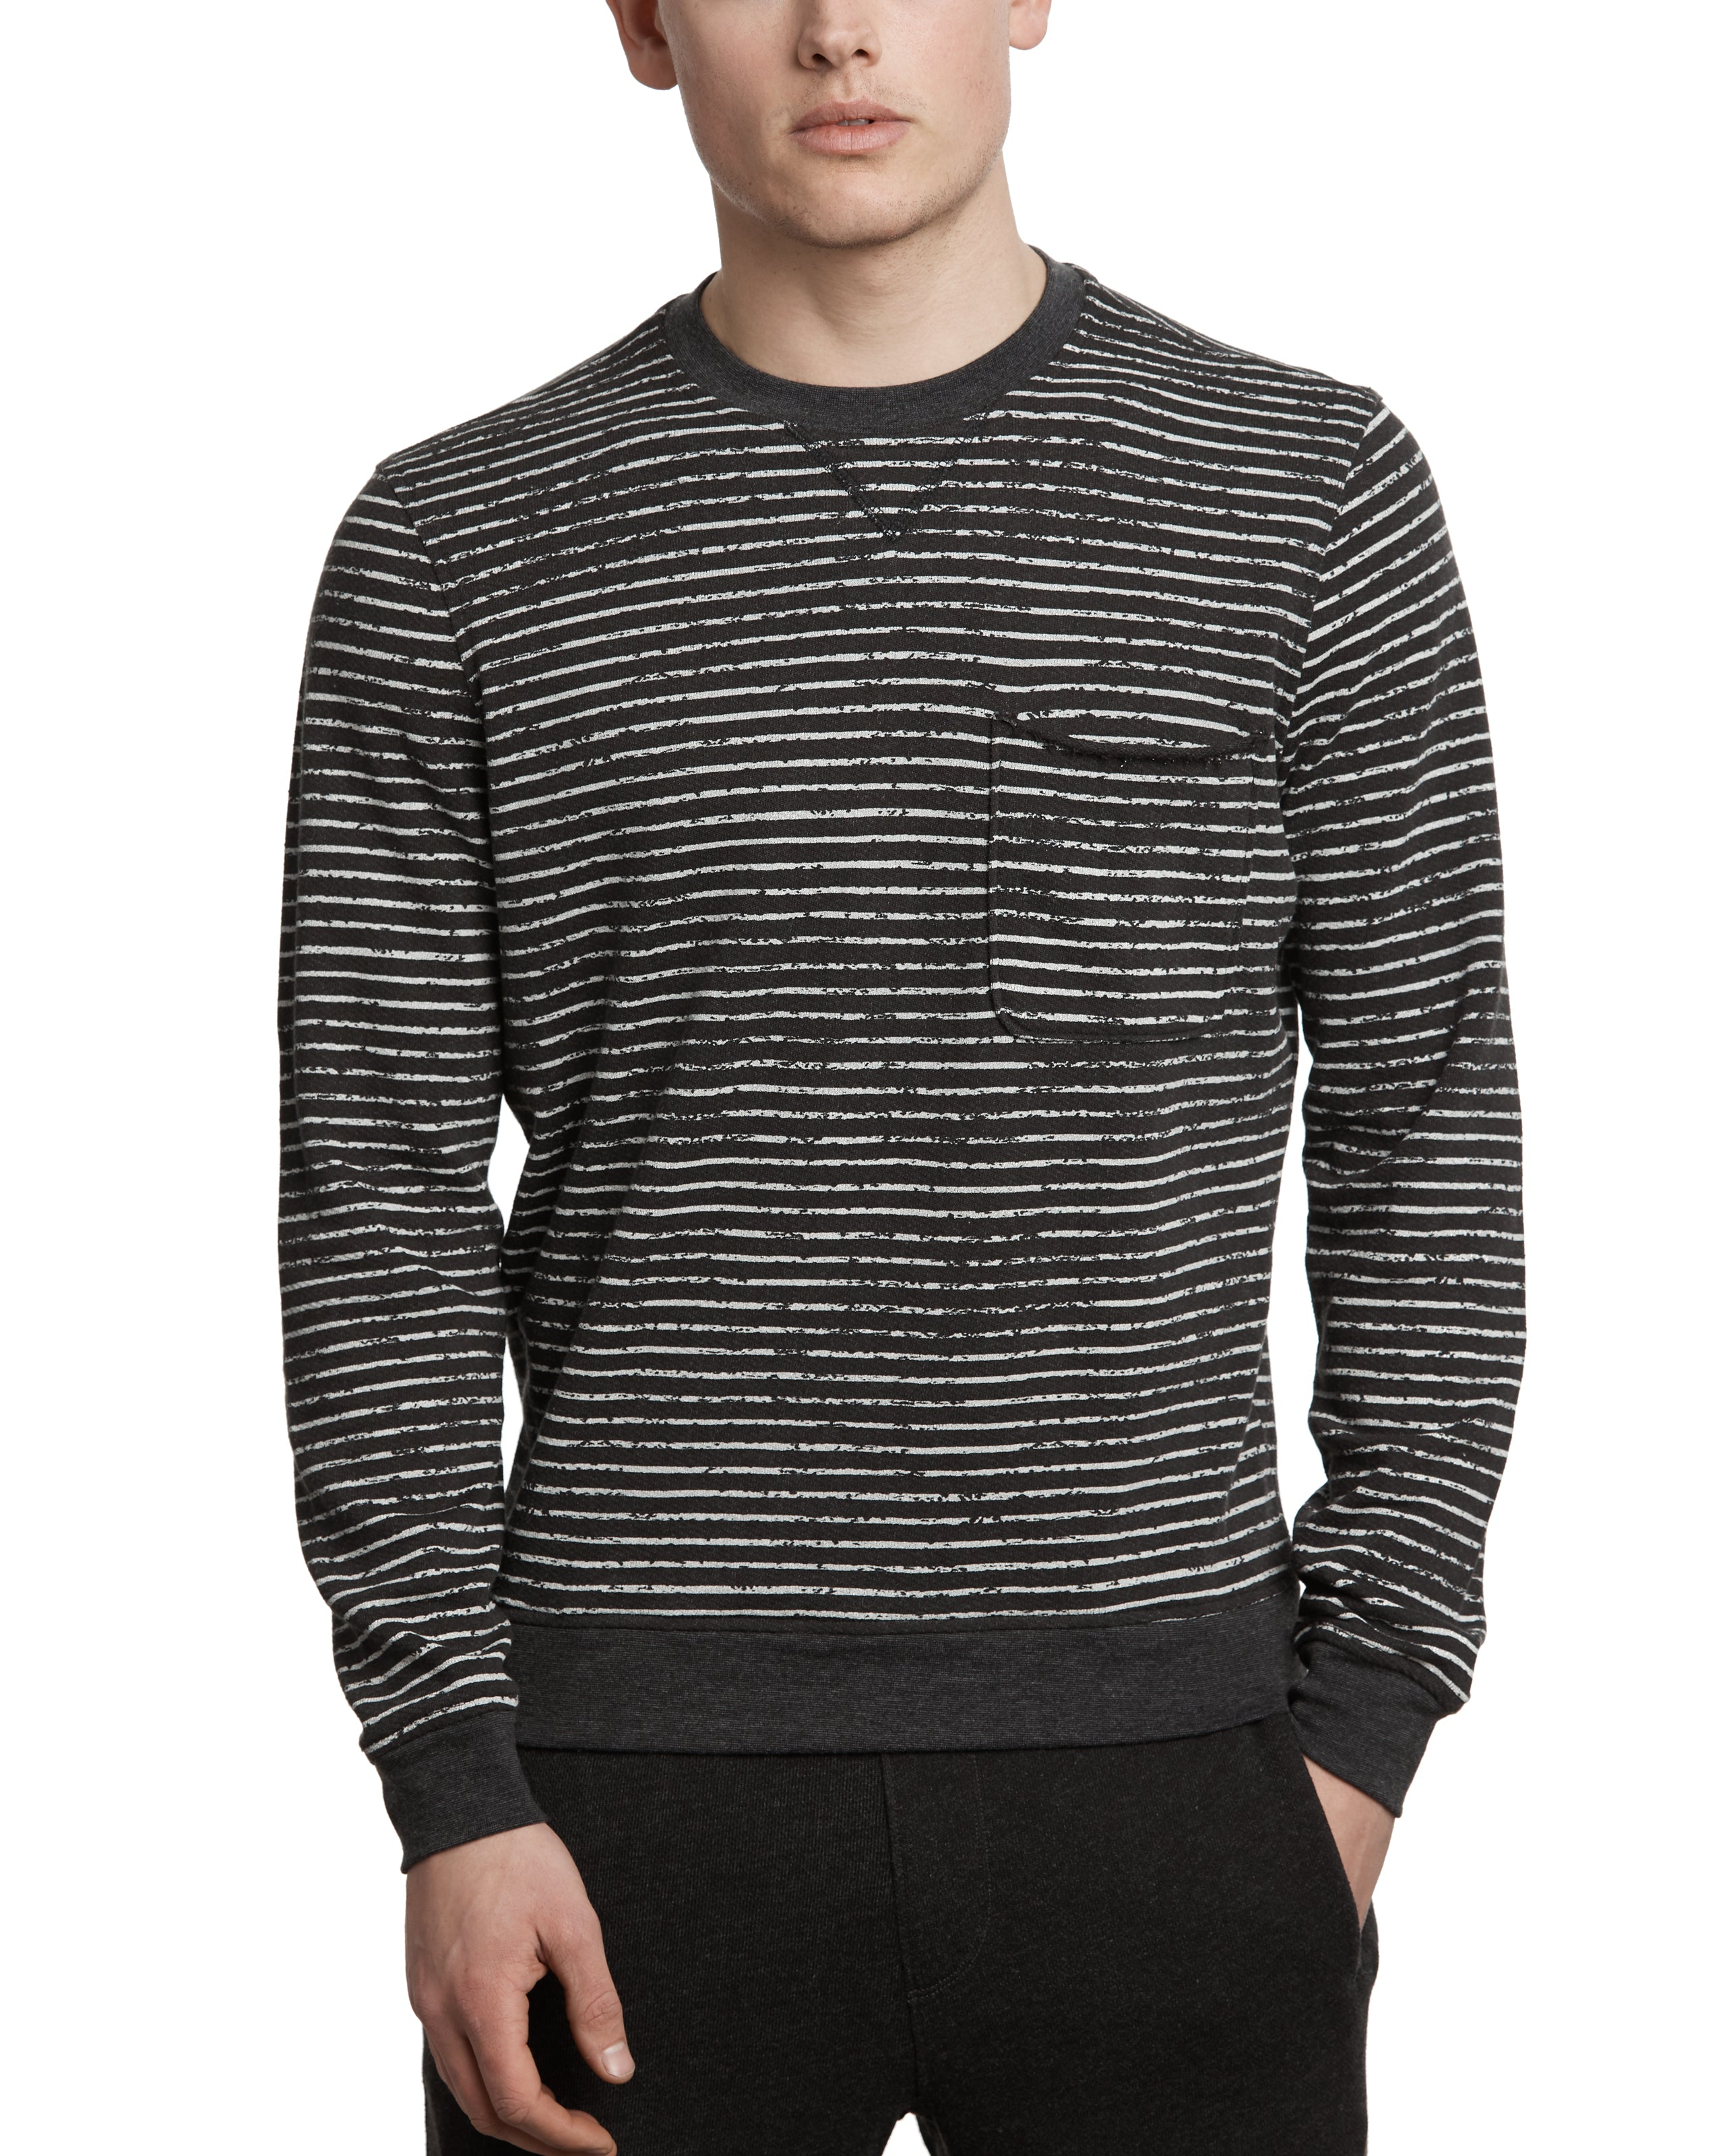 ATM Broken Stripe French Terry Sweatshirt